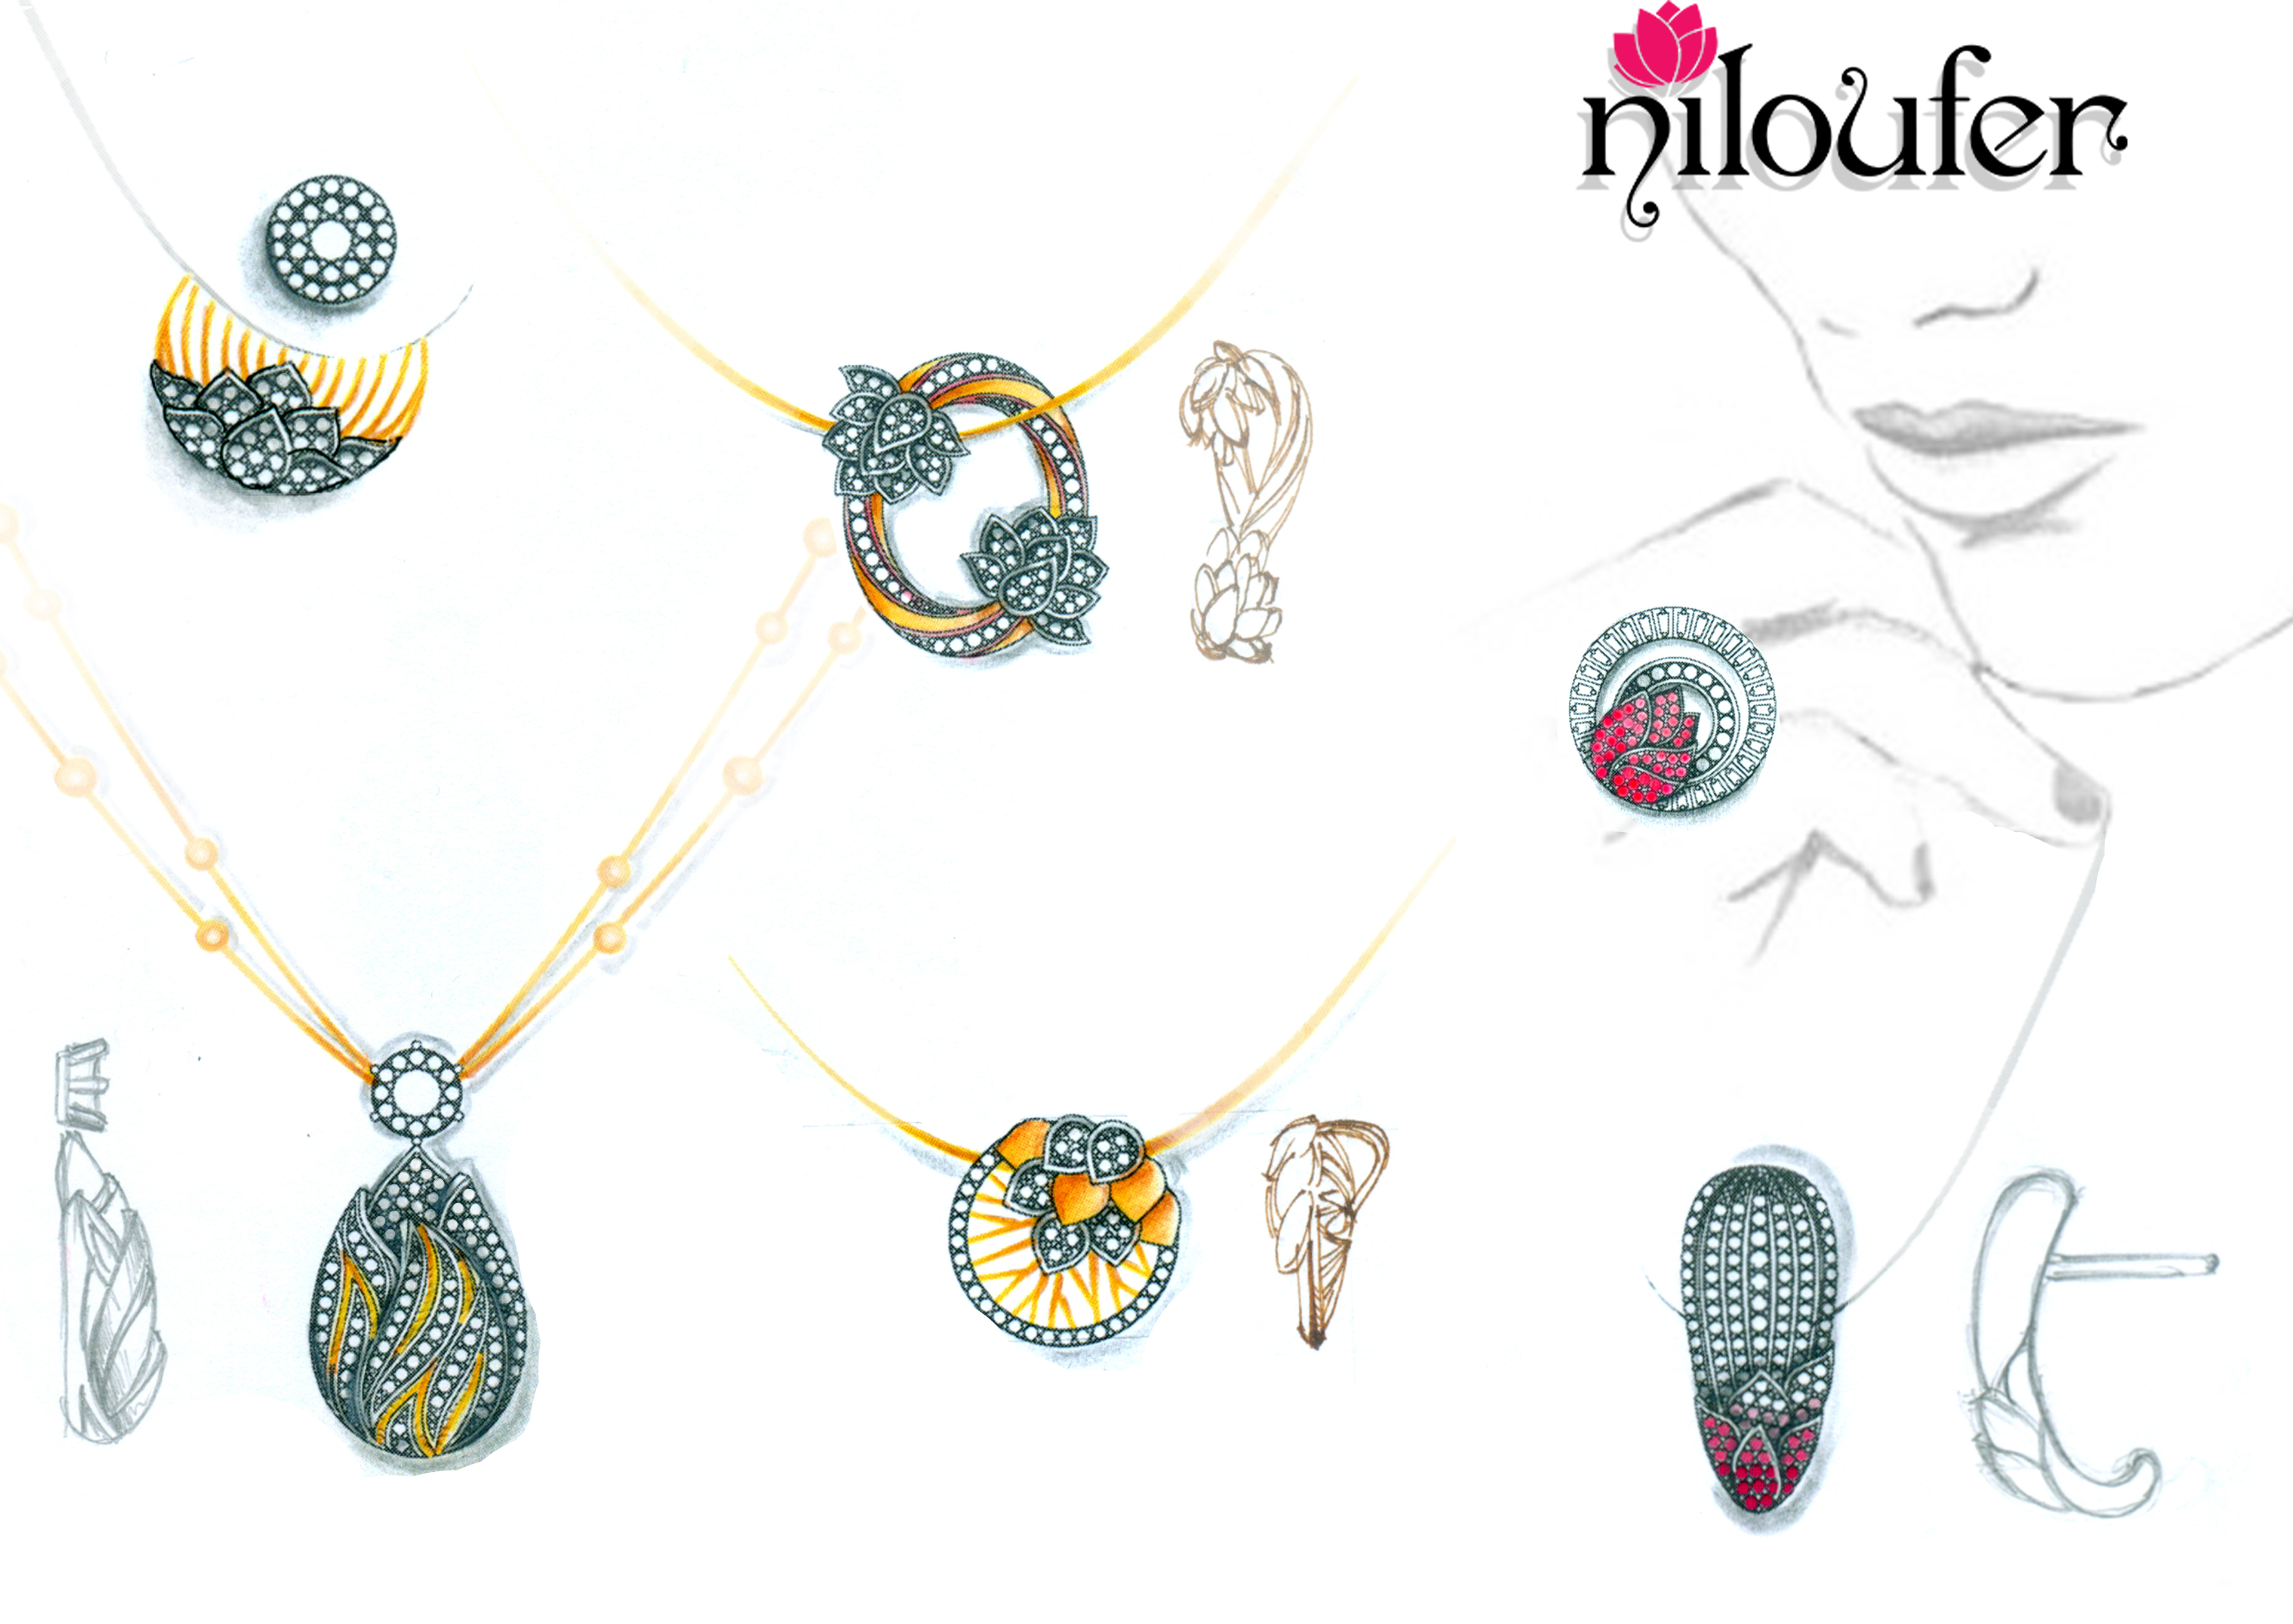 Niloufer by Tanishq on Behance